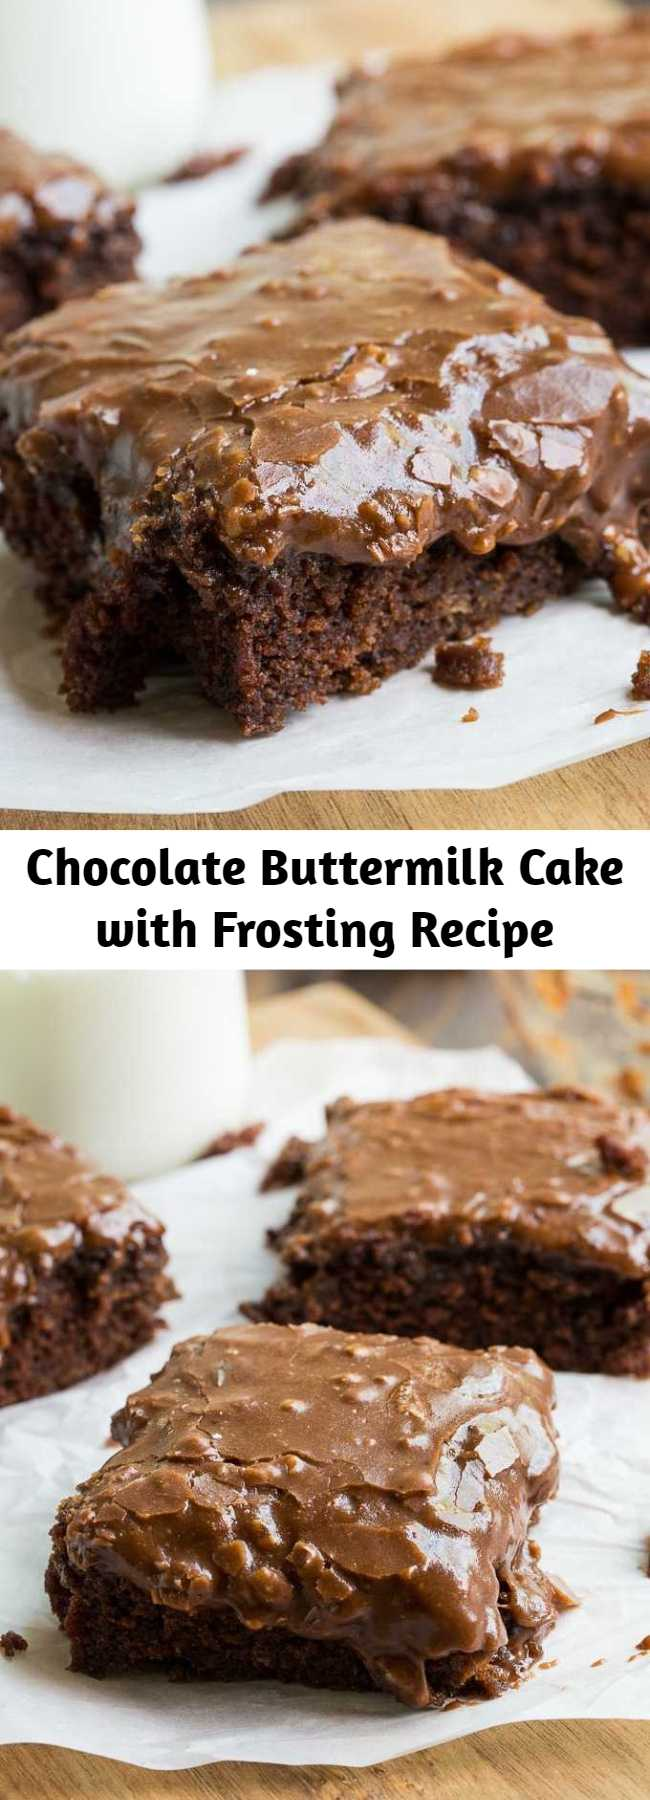 Chocolate Buttermilk Cake with Frosting Recipe - A moist and chocolaty buttermilk cake topped with a sweet and fudgy chocolate buttermilk frosting with pecans. A simple, old-fashioned dessert that never goes out of style because it's so darn good.